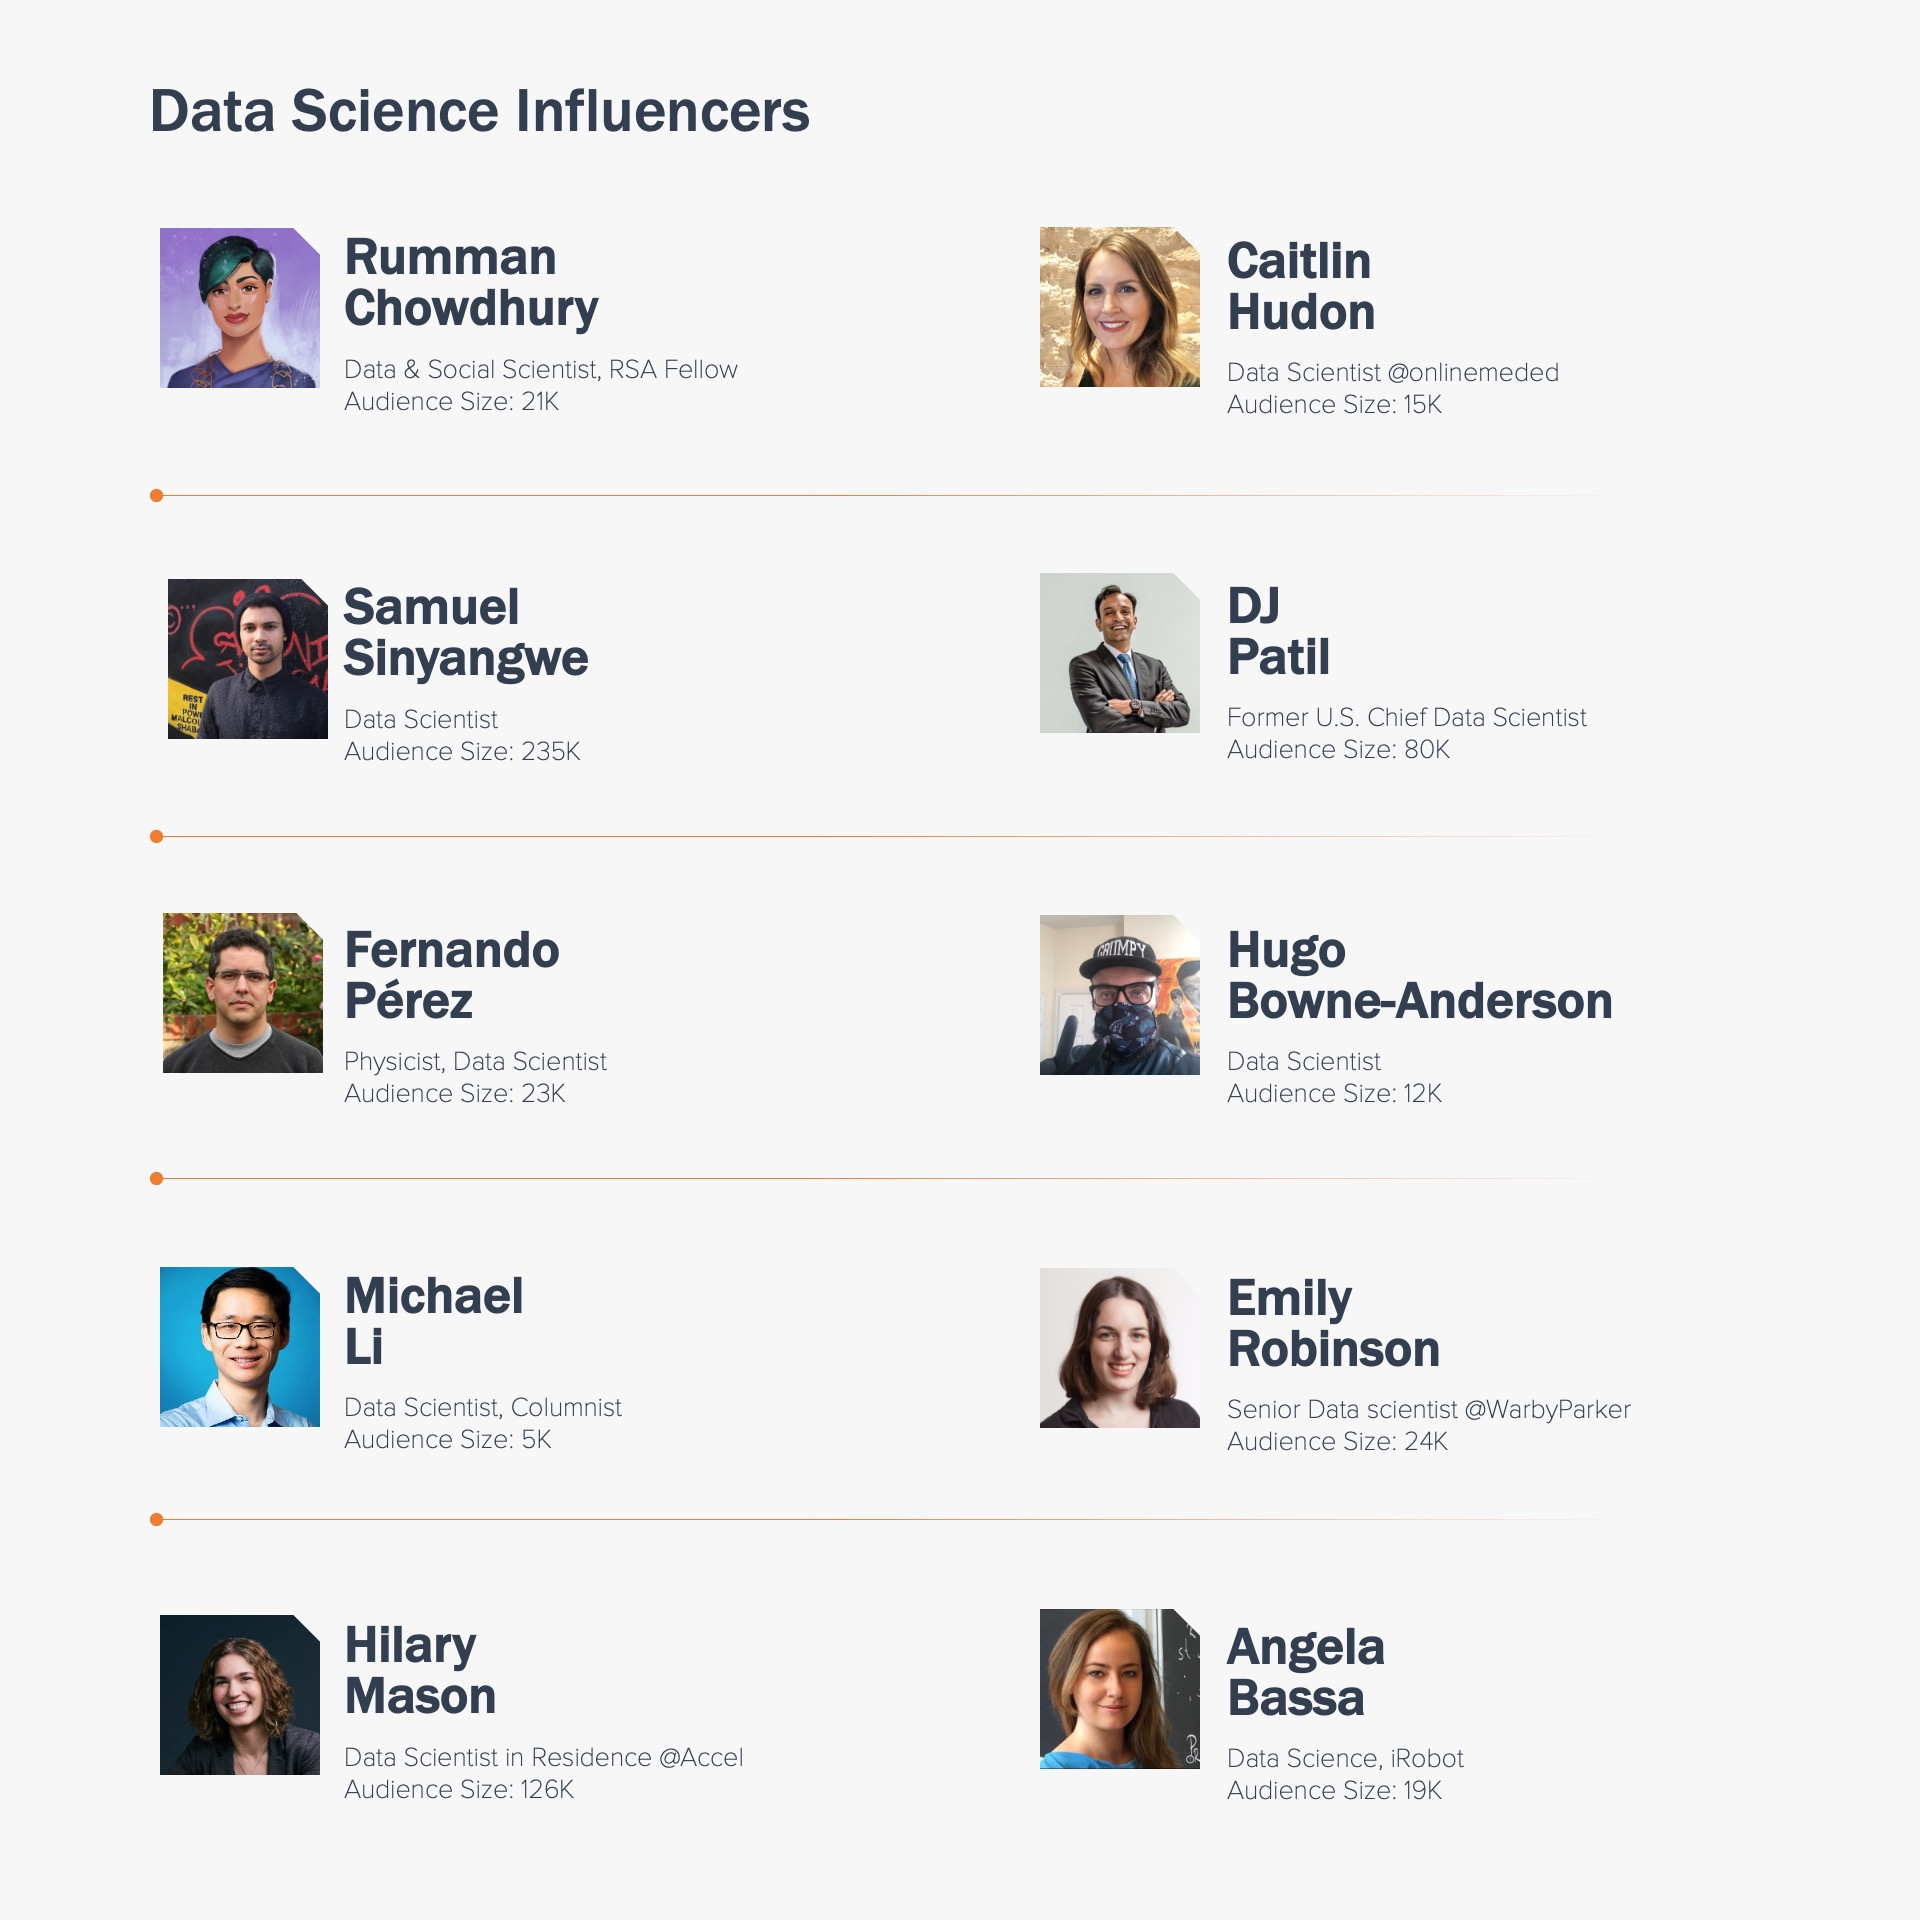 DataScience Influencers